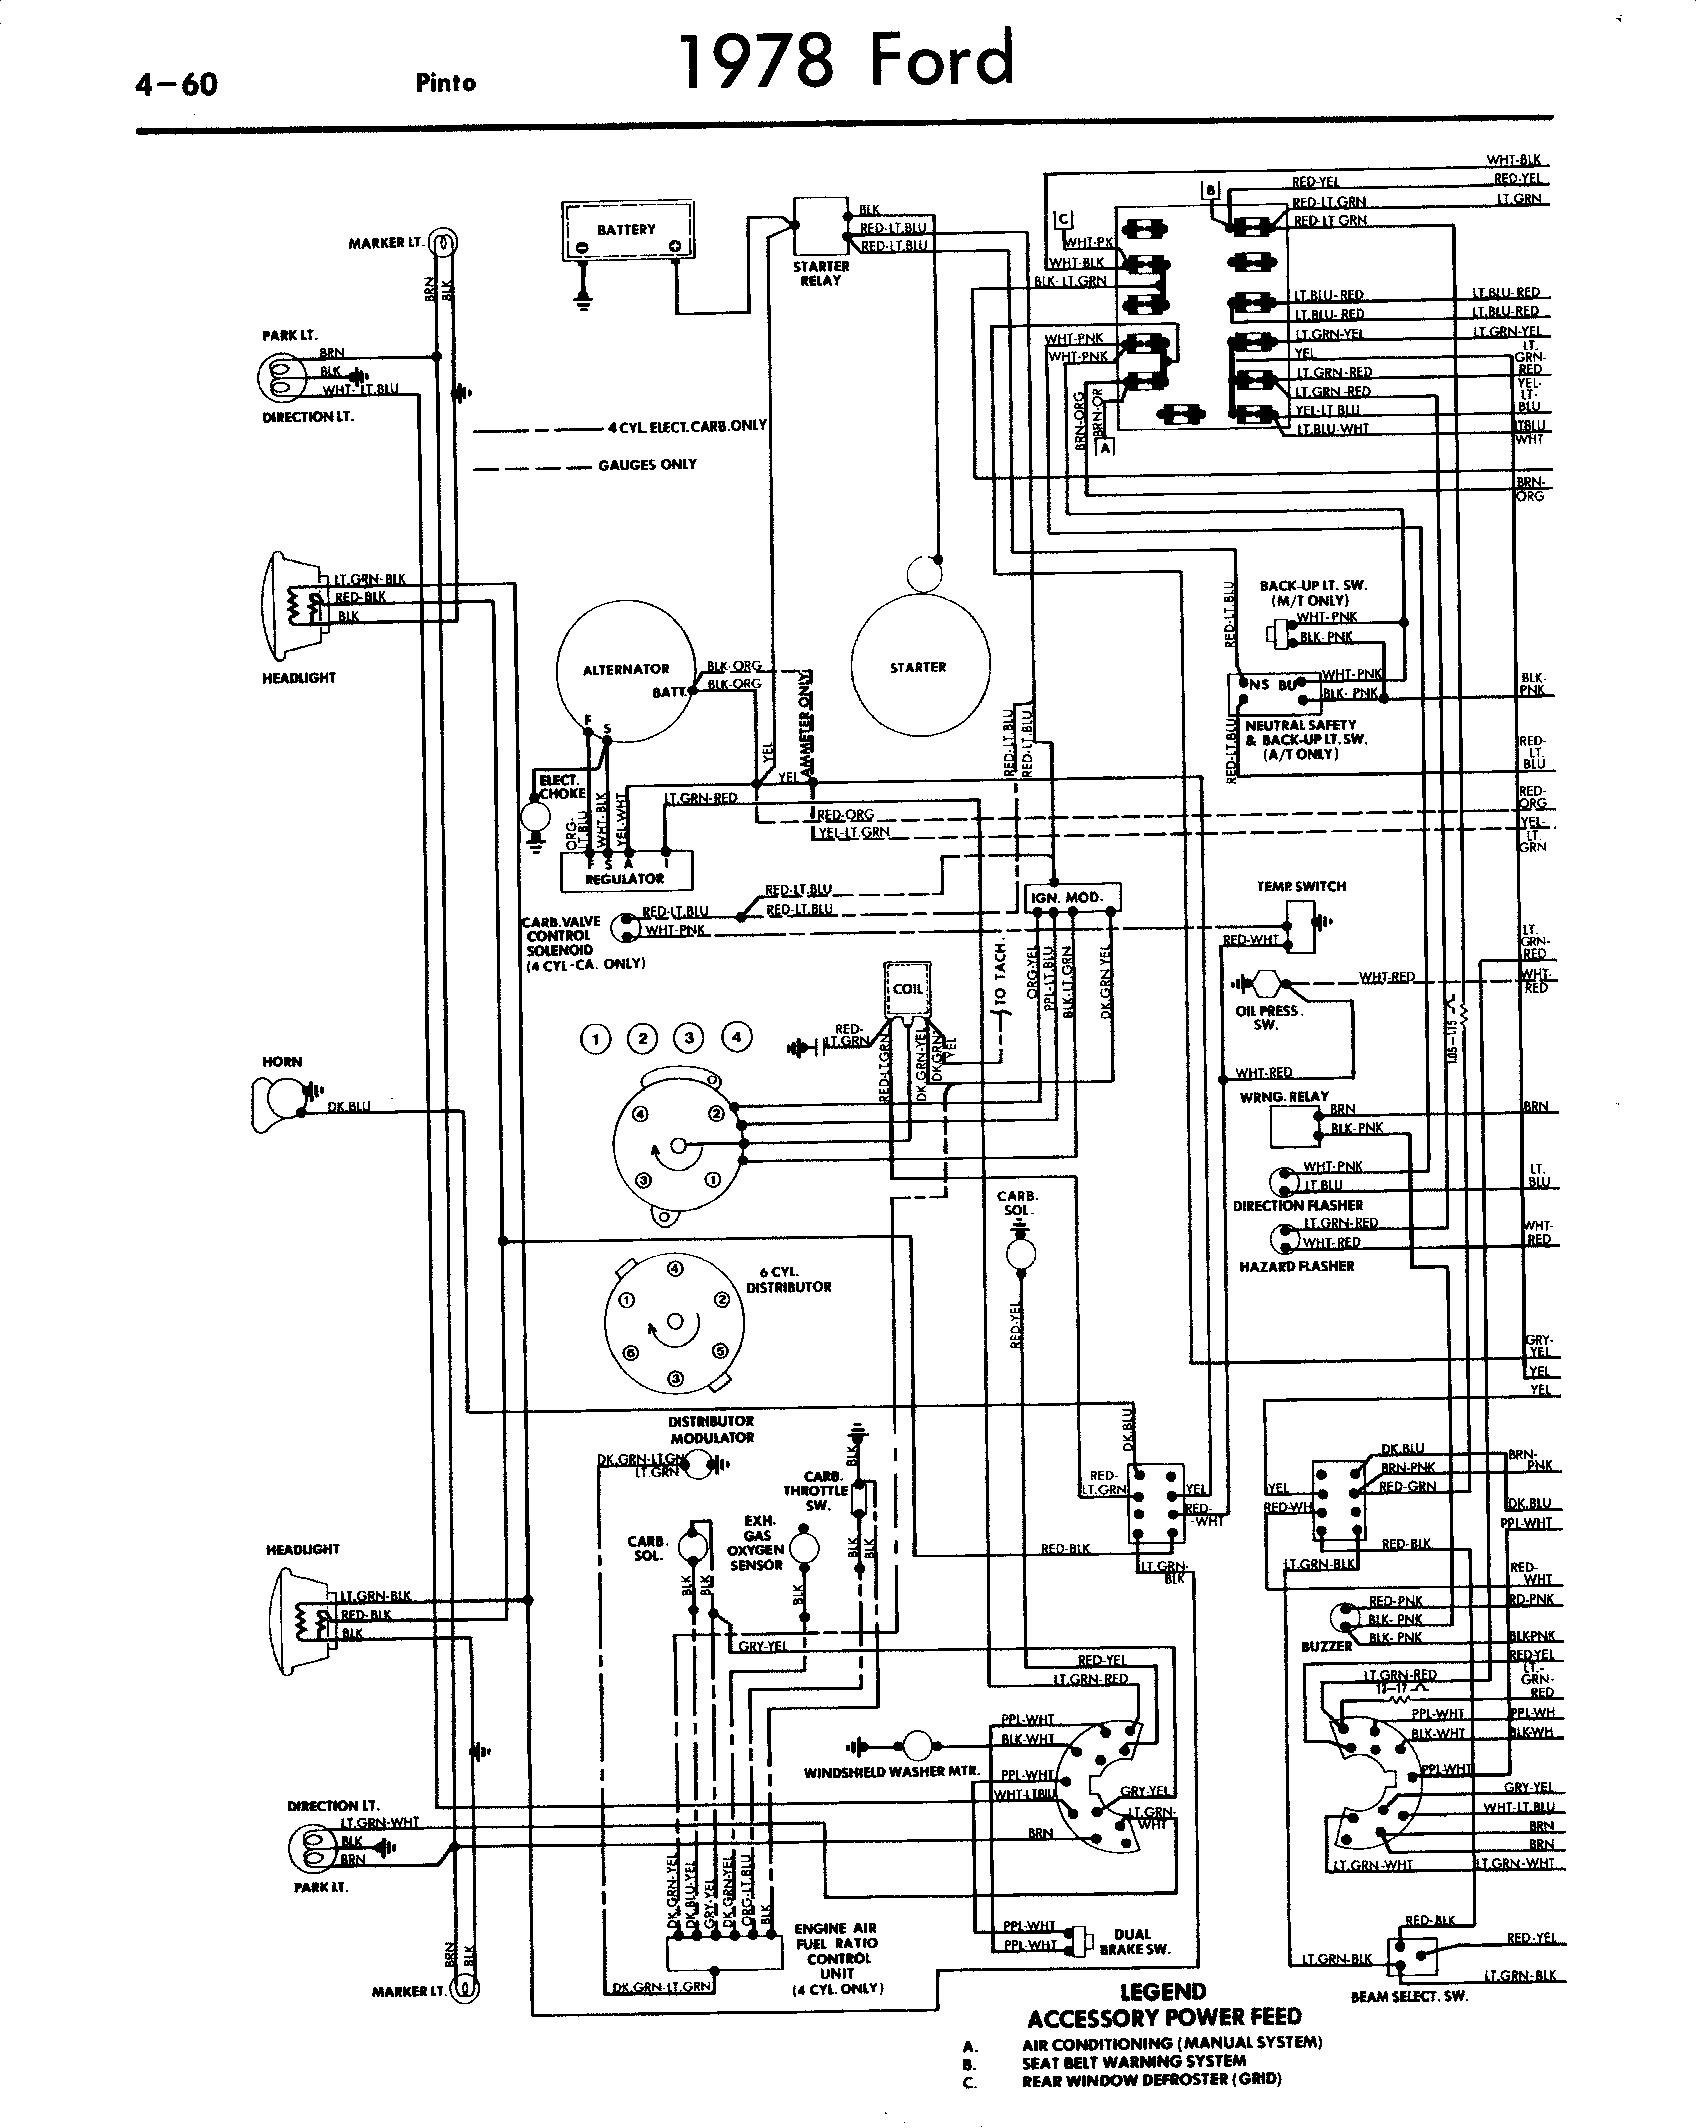 1990 Ford F150 5 0 Wiring Diagram Wire Data Schema Engine 1994 F 150 U2022 Image 2001 Radio F250